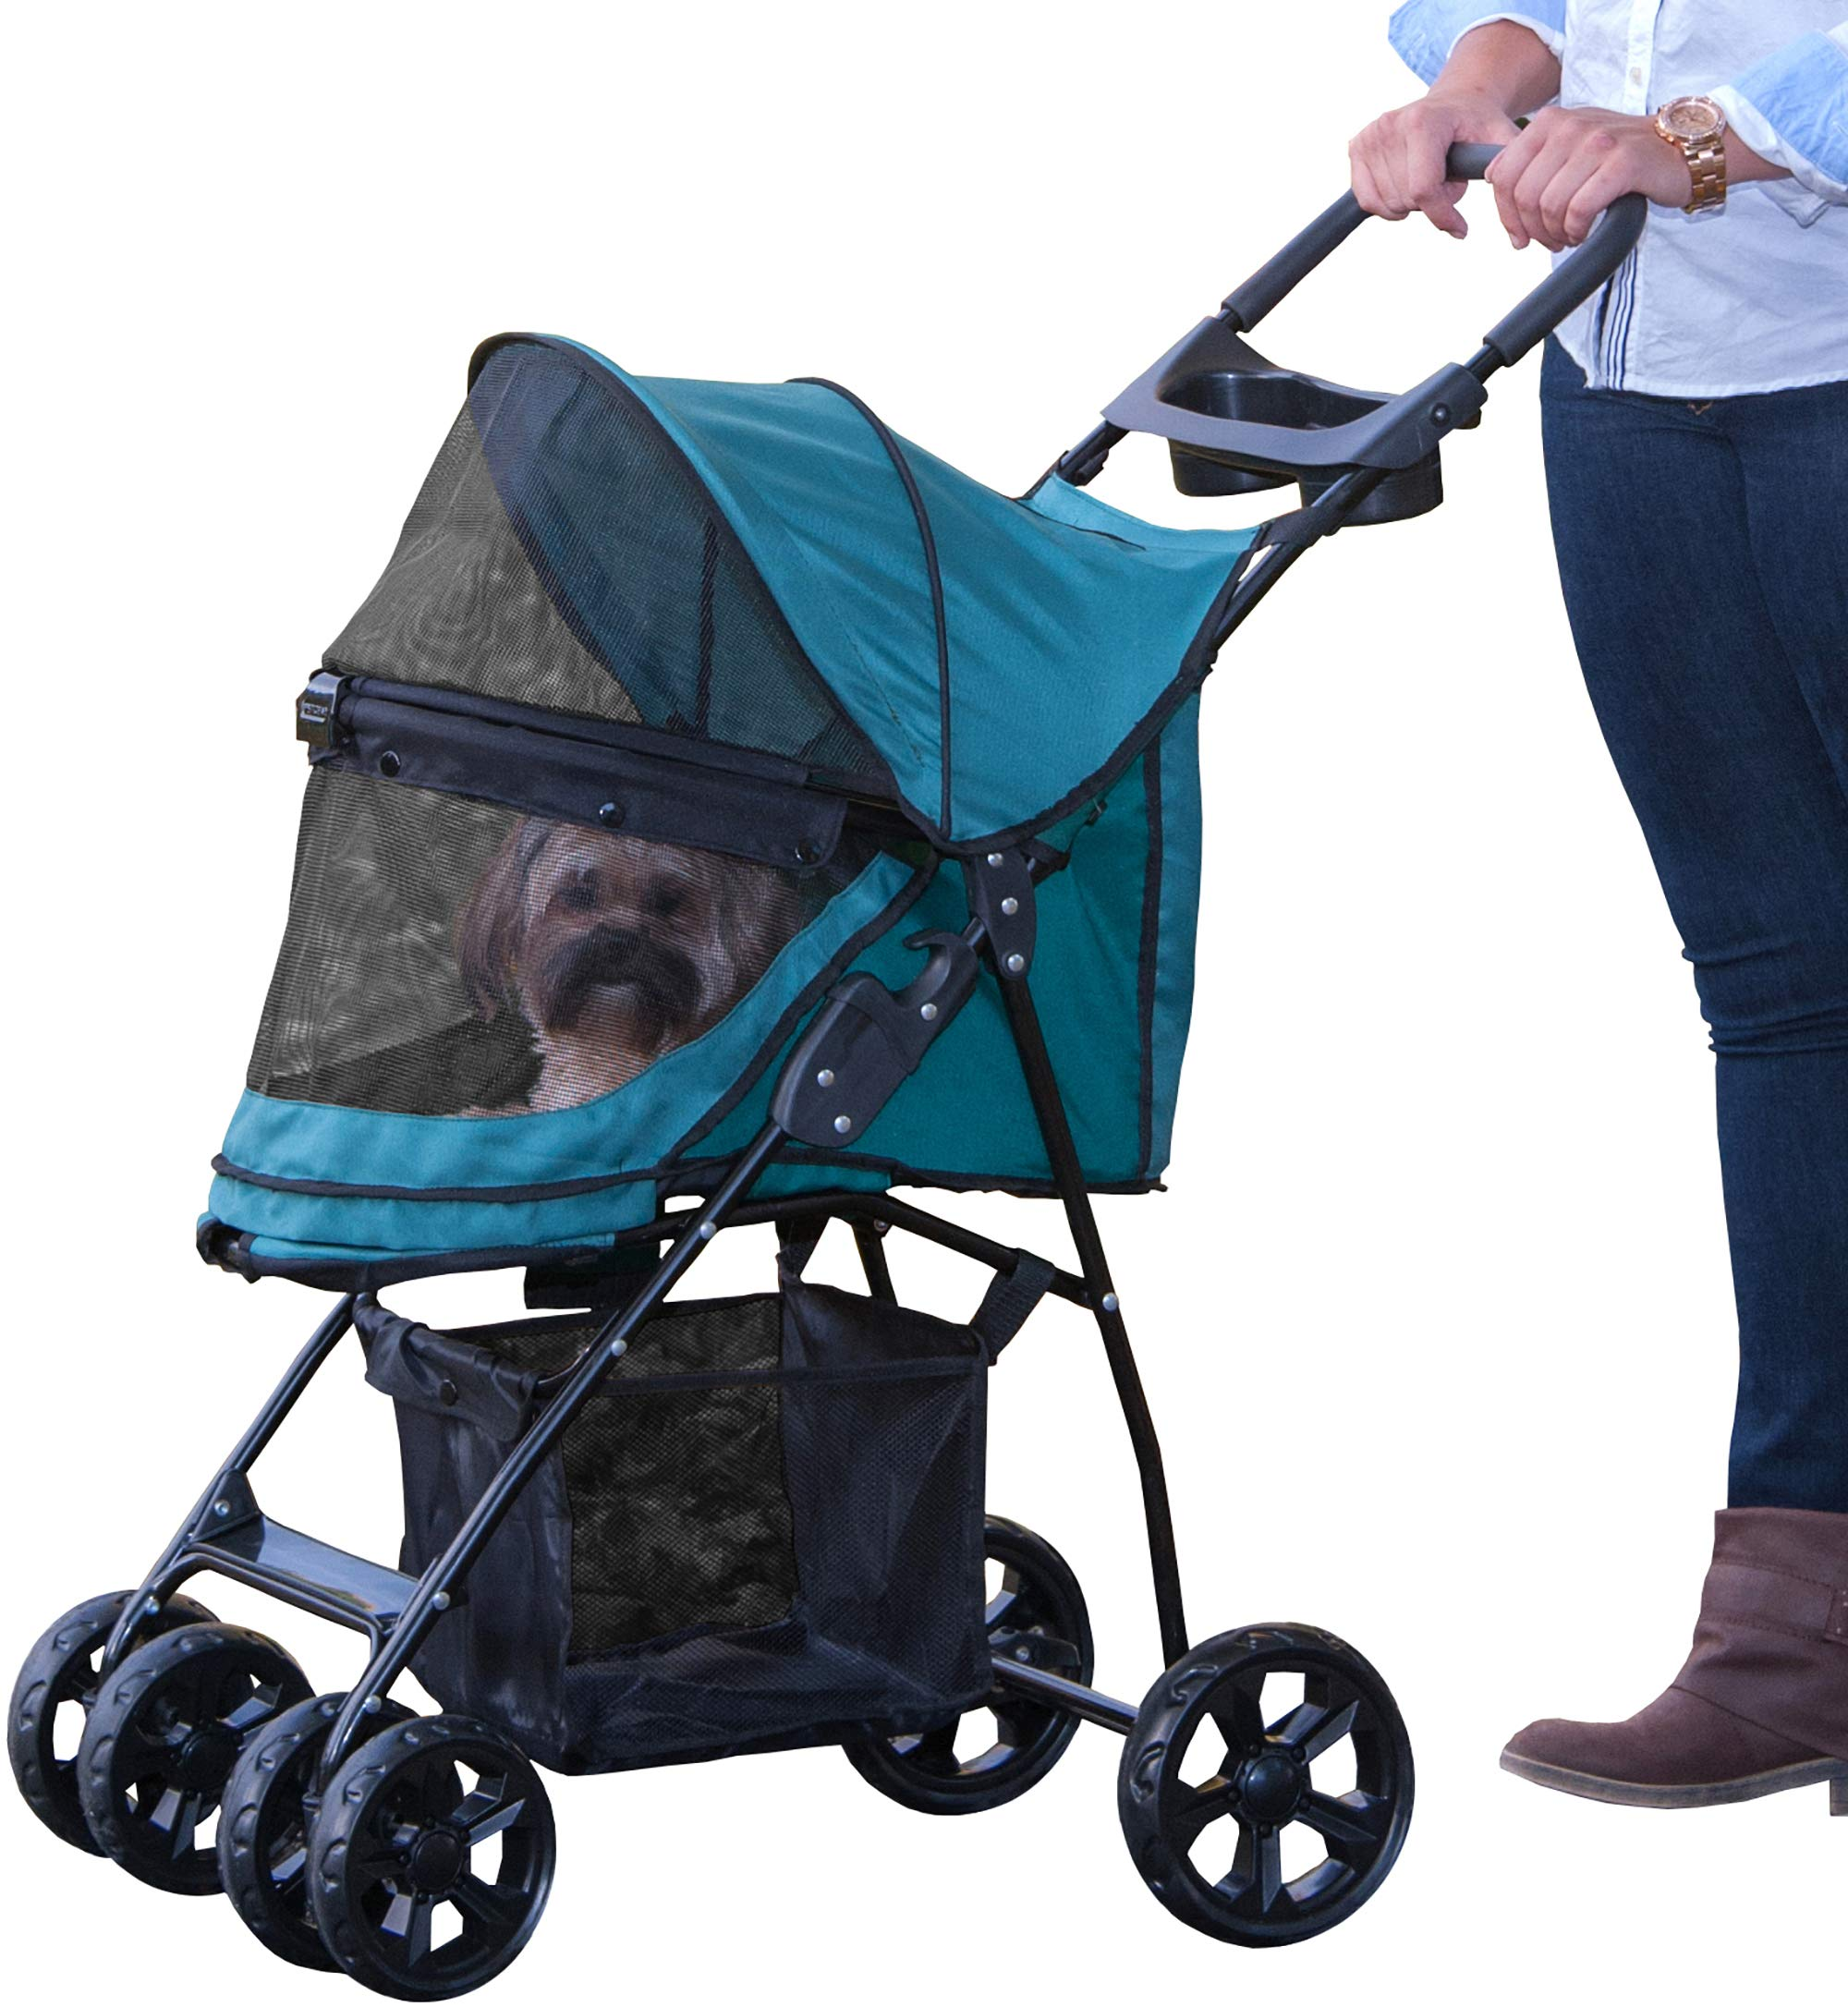 Pet Gear No-Zip Happy Trails Lite Pet Stroller for Cats/Dogs, Zipperless Entry, Easy Fold with Removable Liner, Storage Basket + Cup Holder by Pet Gear